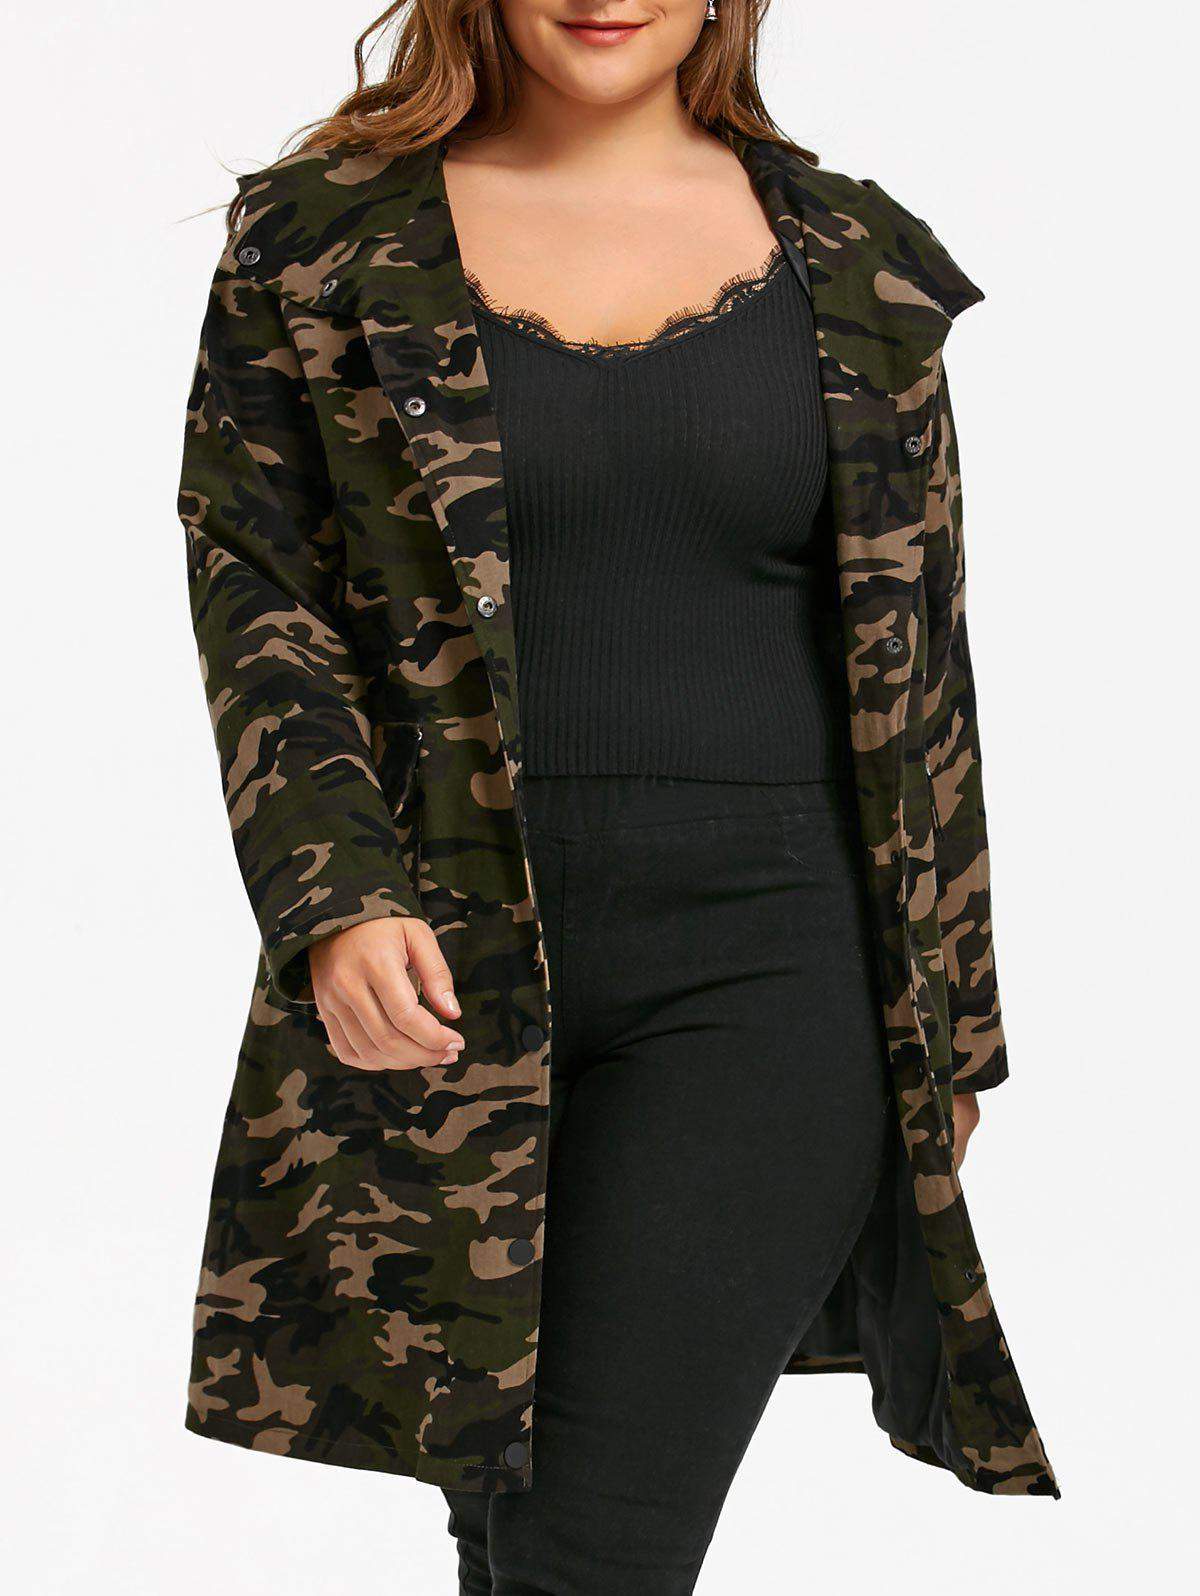 Plus Size Camouflage Flap Pockets Hooded CoatWOMEN<br><br>Size: 4XL; Color: ACU CAMOUFLAGE; Clothes Type: Trench; Material: Polyester; Type: Wide-waisted; Shirt Length: Long; Sleeve Length: Full; Collar: Hooded; Pattern Type: Others; Embellishment: Pockets; Style: Casual; Season: Fall,Spring; Weight: 0.7700kg; Package Contents: 1 x Coat;